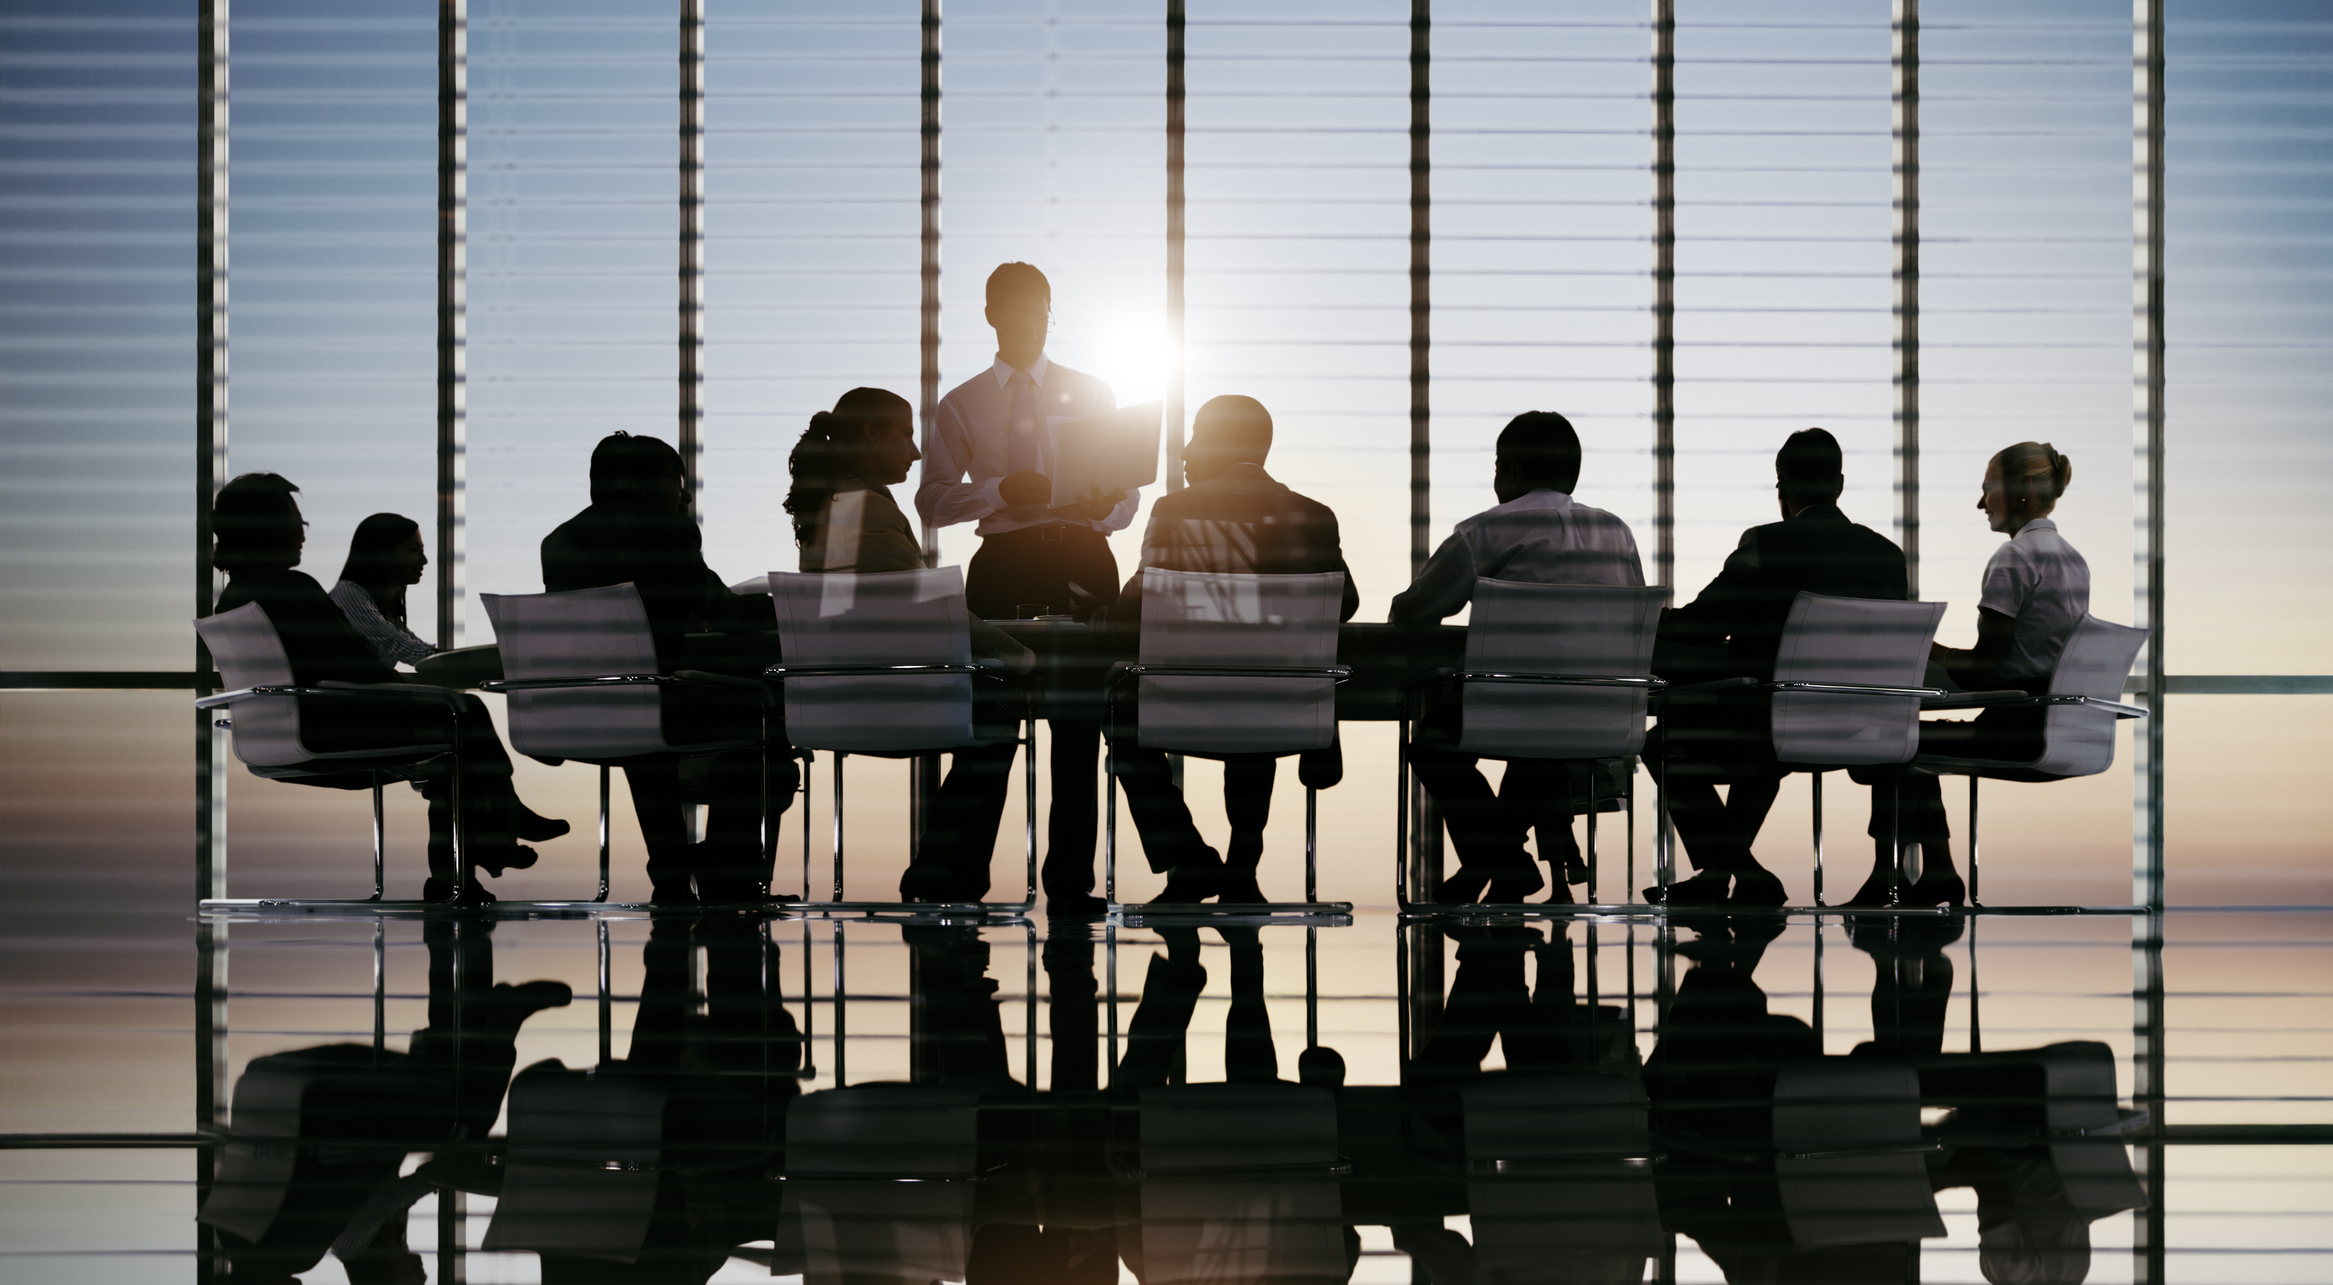 Board Meetings are not to be feared, but leveraged